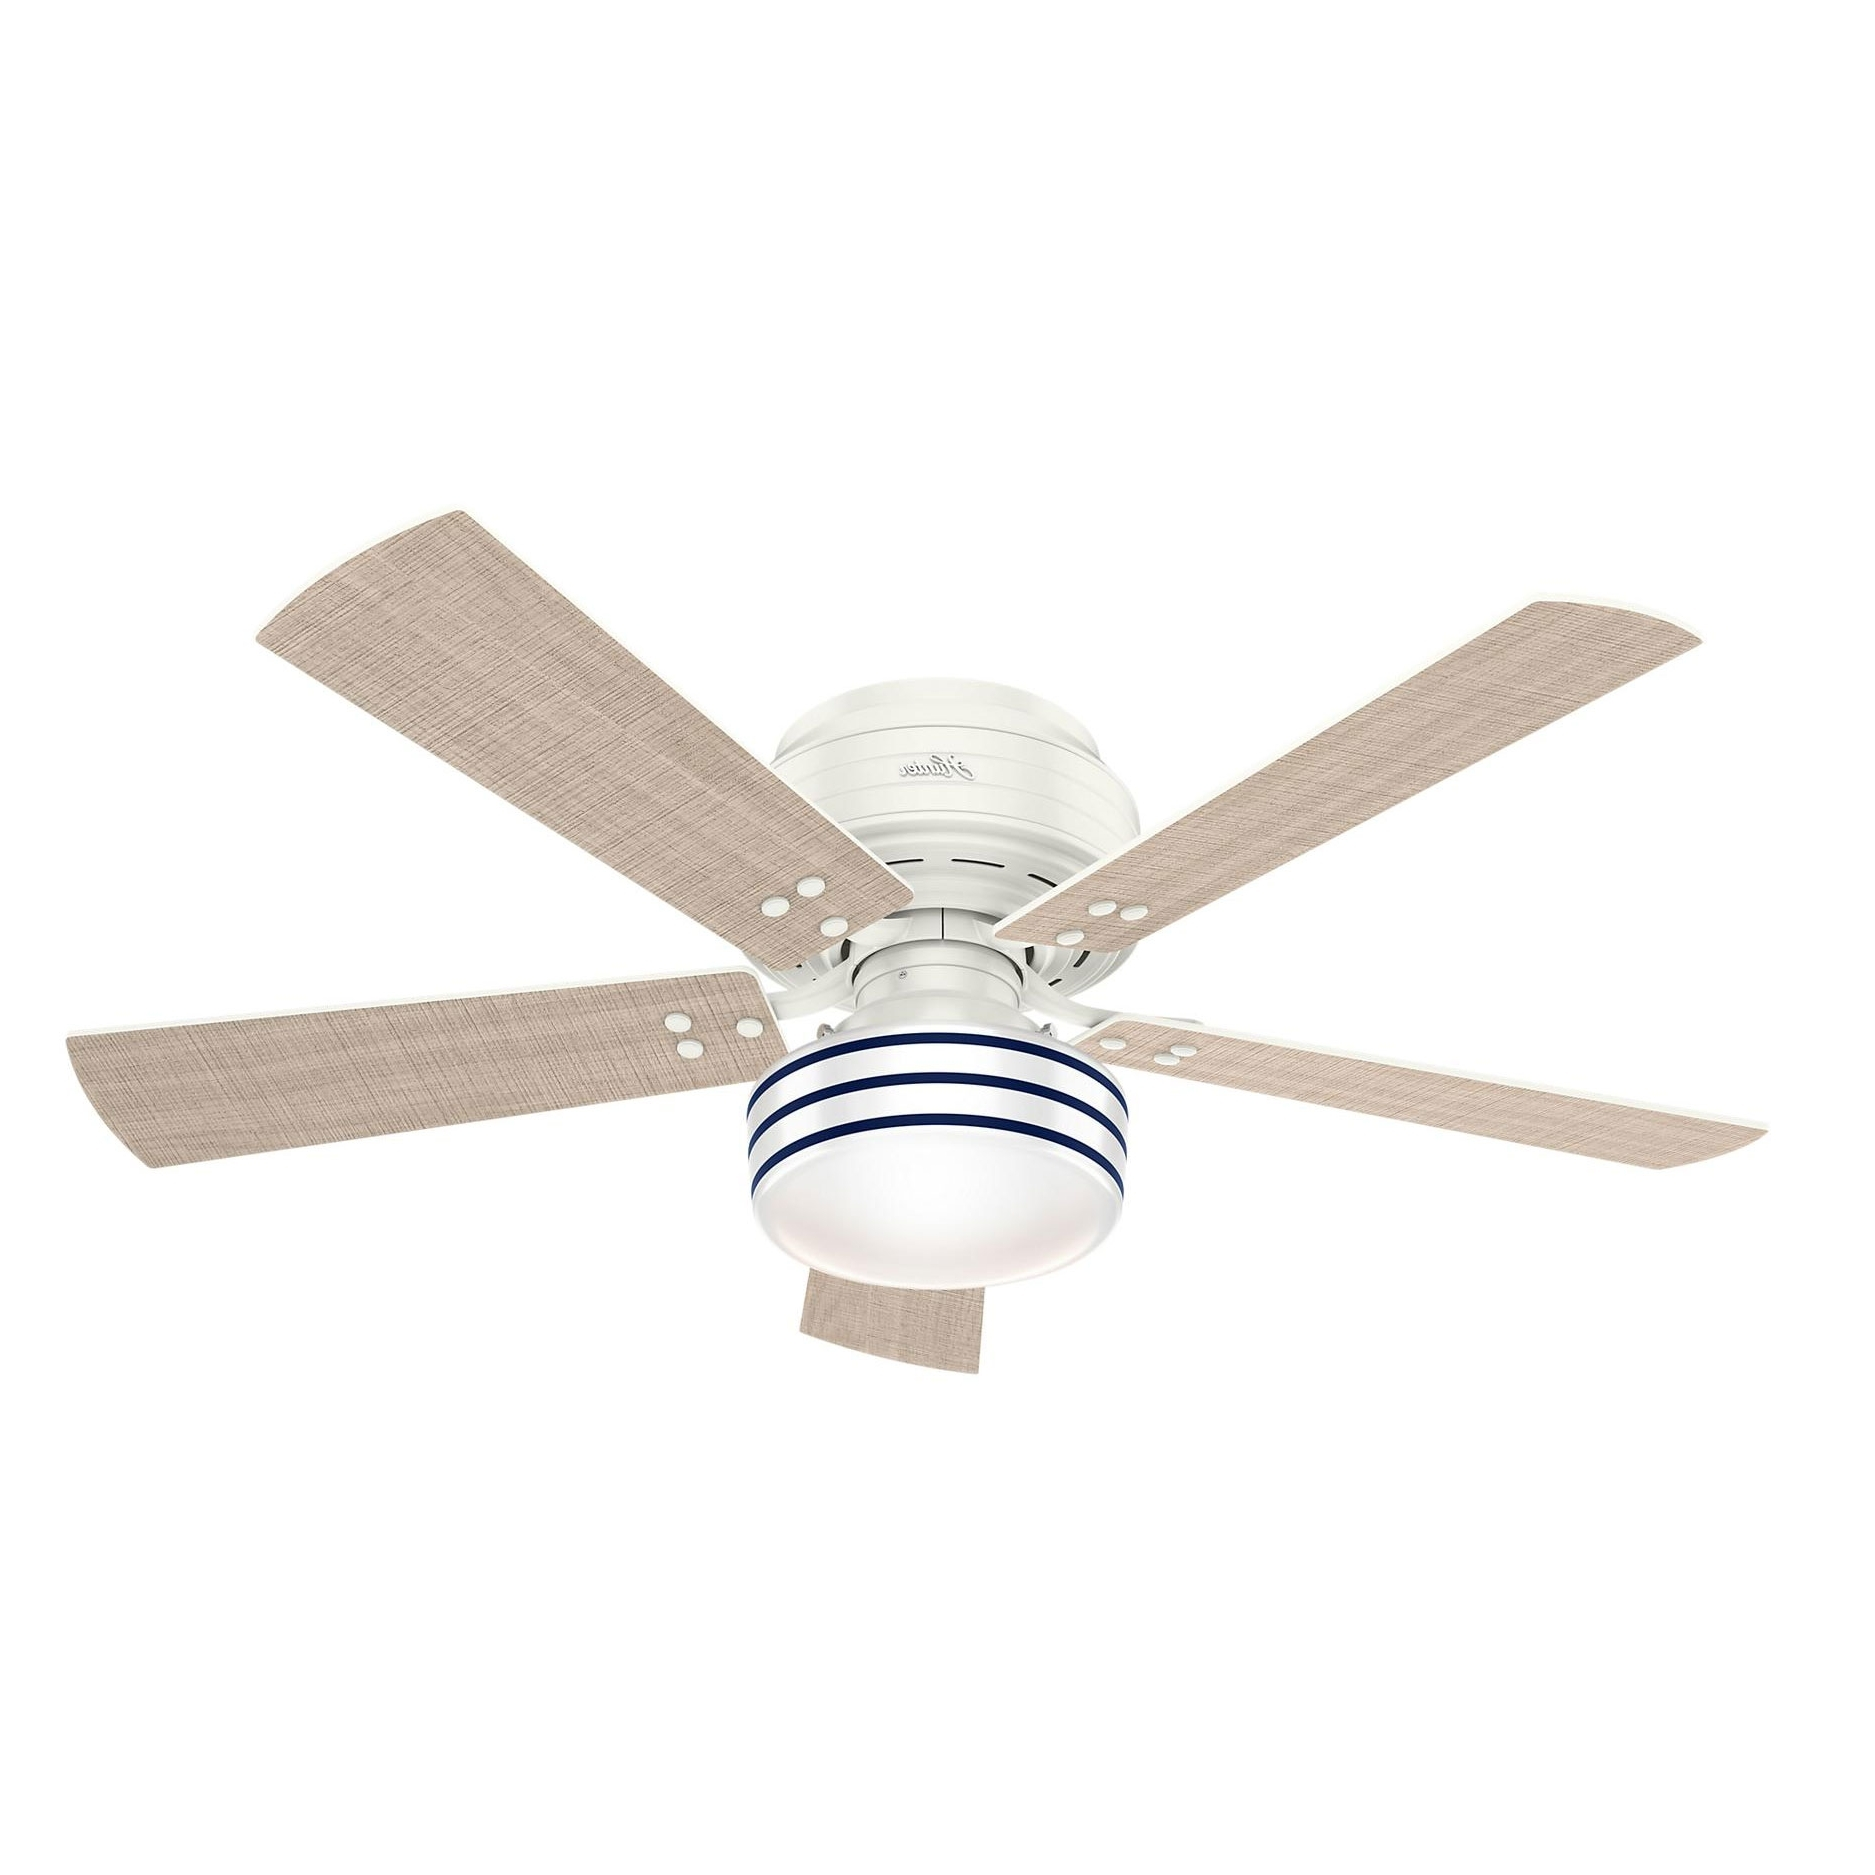 Cedar Key Low Profile Indoor/outdoor Ceiling Fan With Light Throughout Most Recently Released Low Profile Outdoor Ceiling Fans With Lights (View 18 of 20)